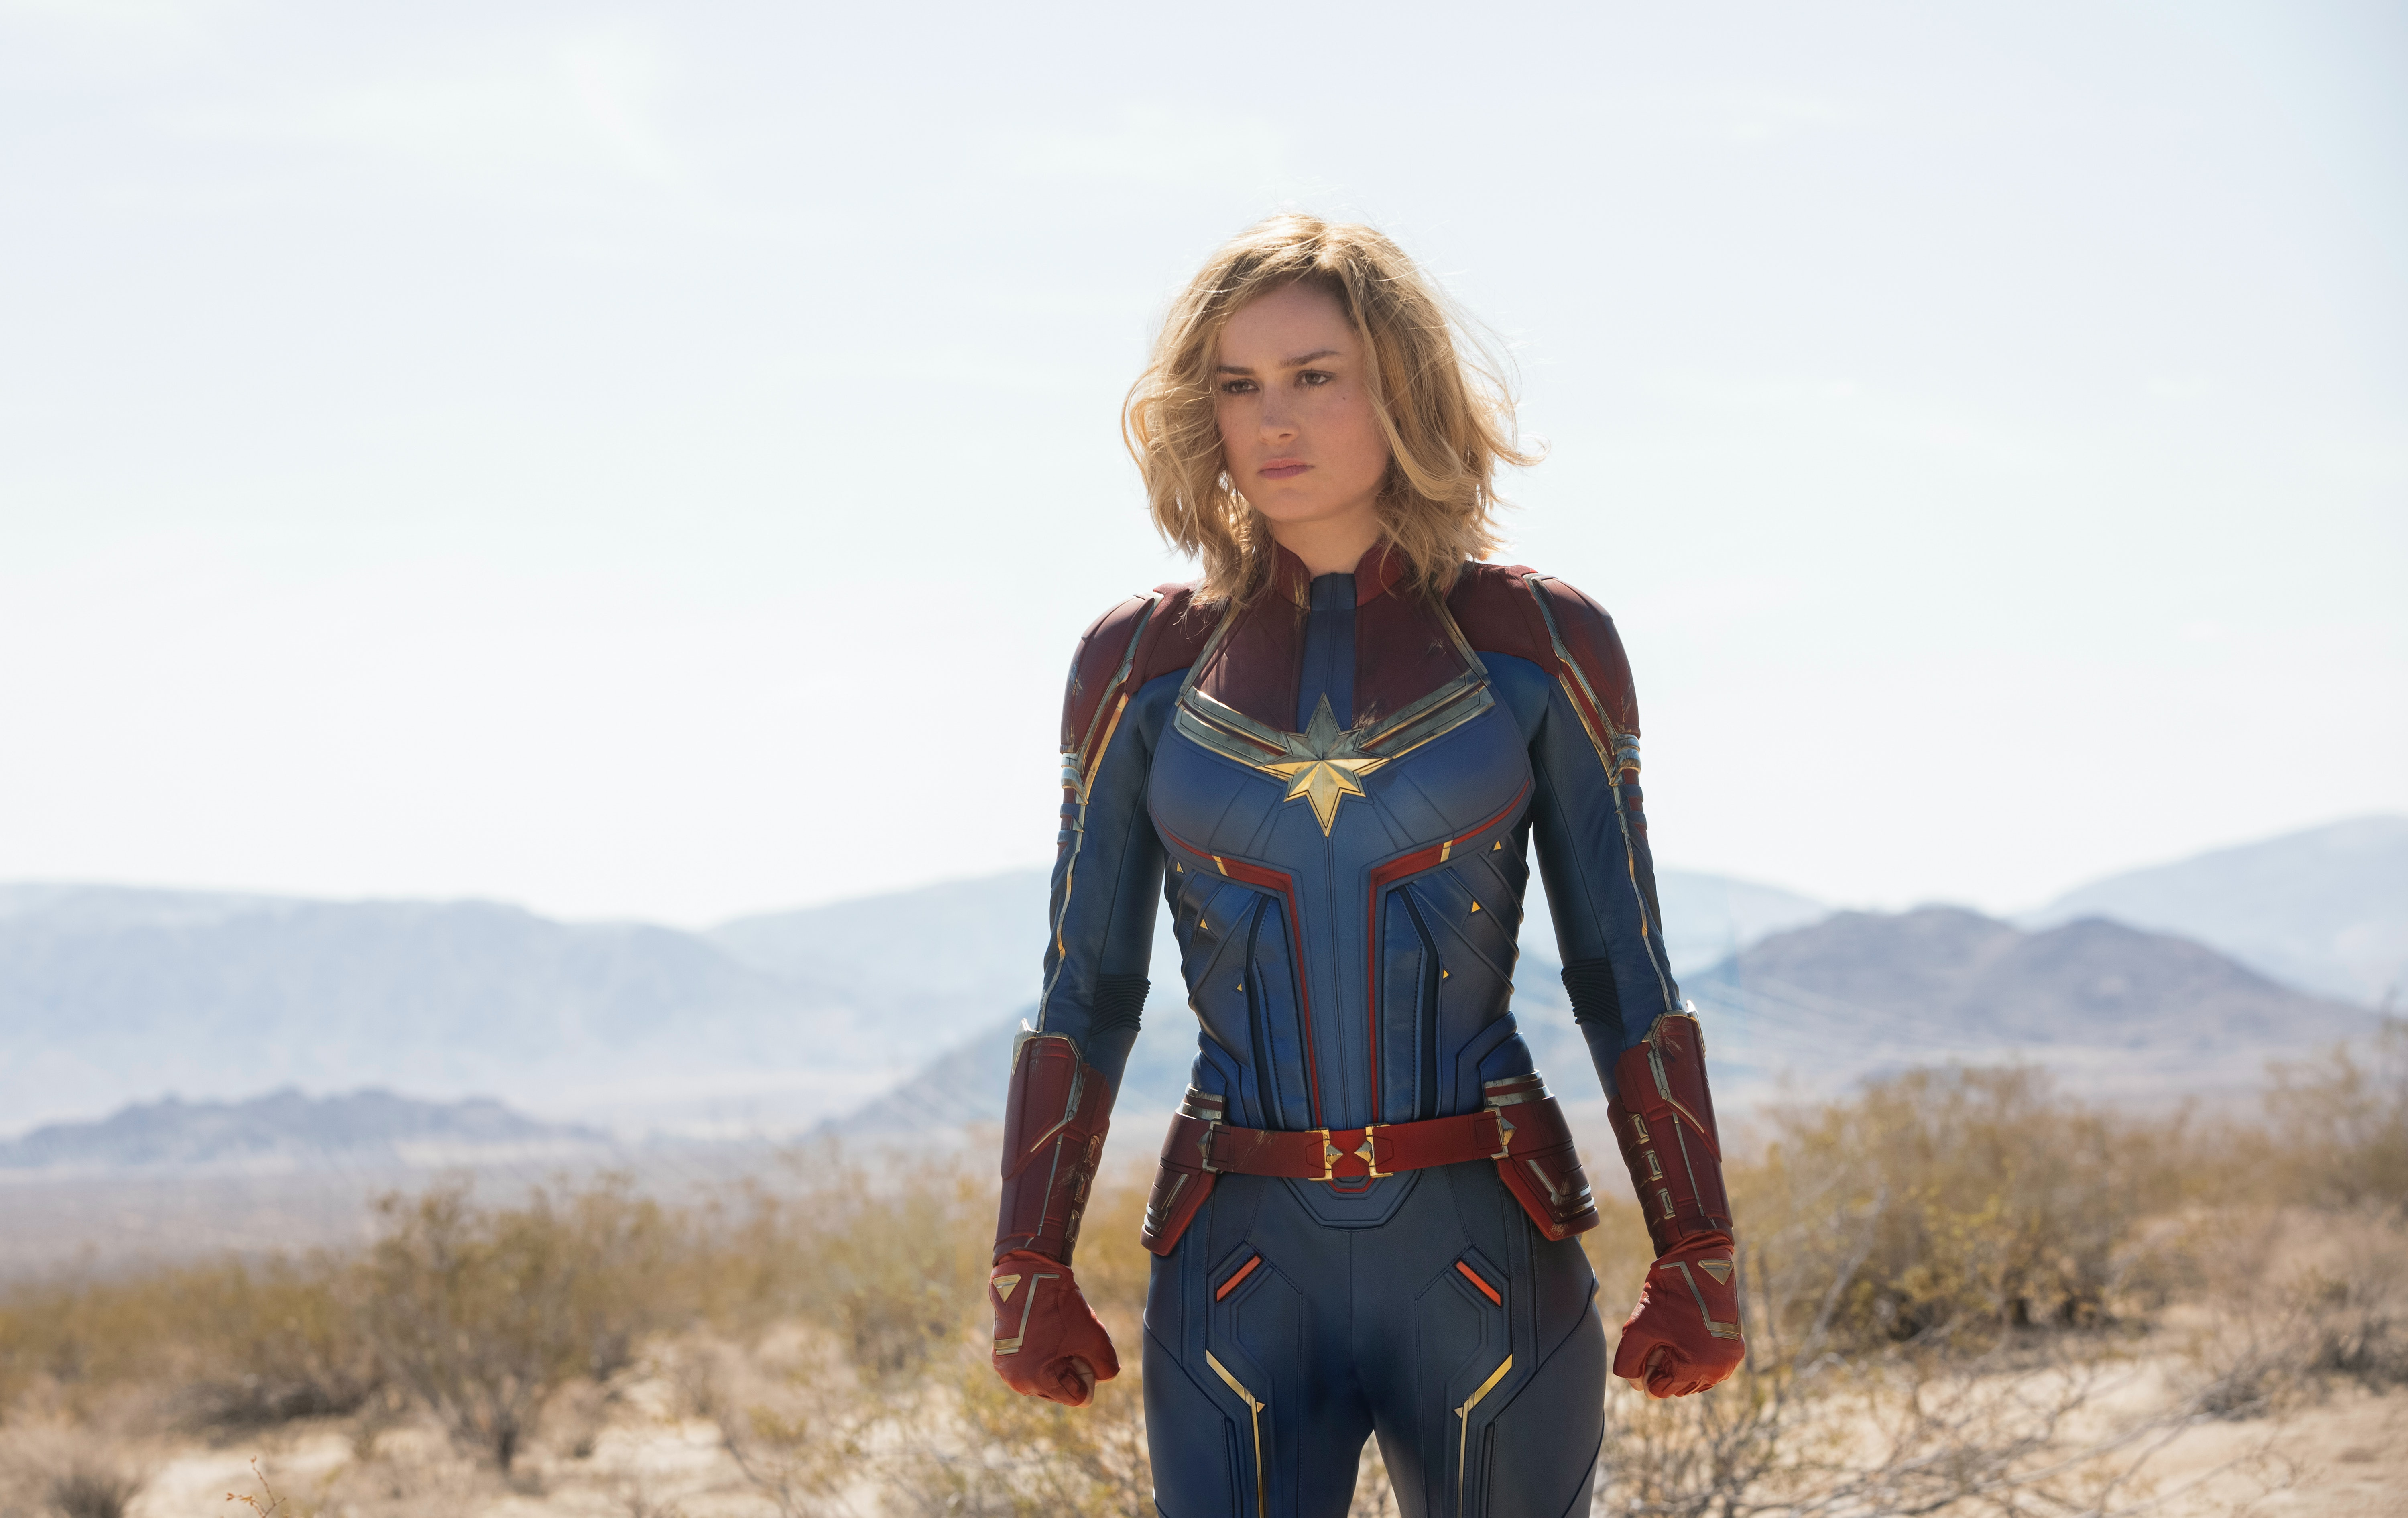 Captain Marvel S Endgame Haircut Make A Major Statement Fans Are On Board